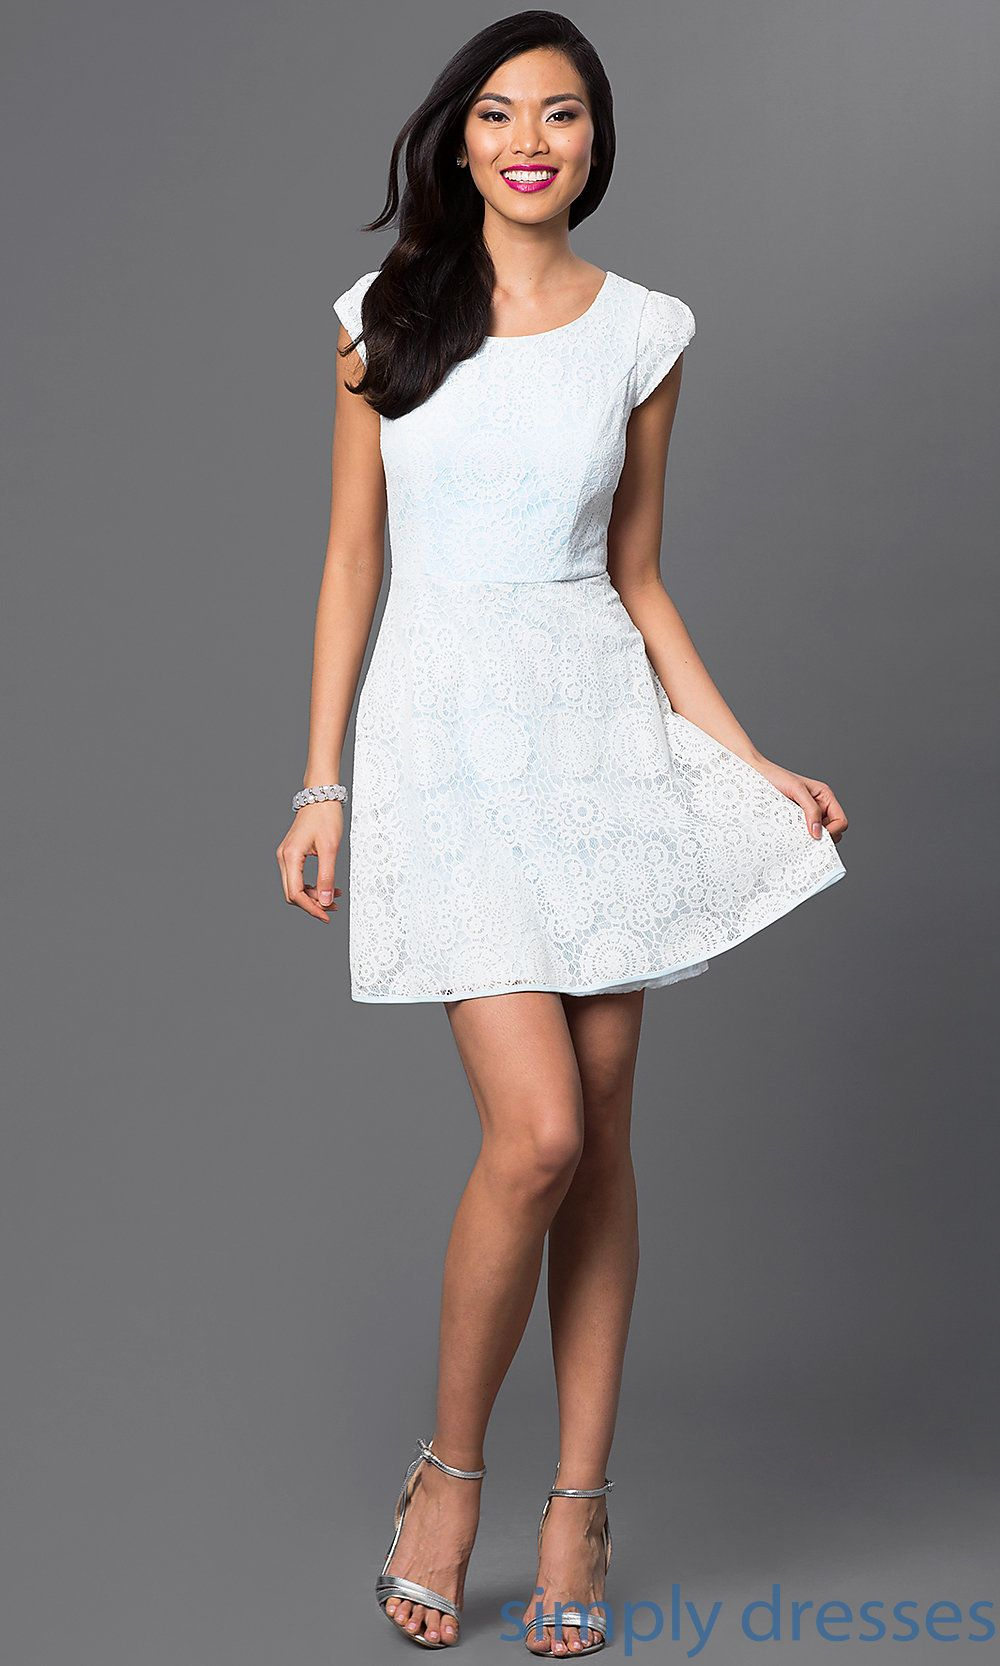 Shop blue and white graduation dresses with cap sleeves at simply